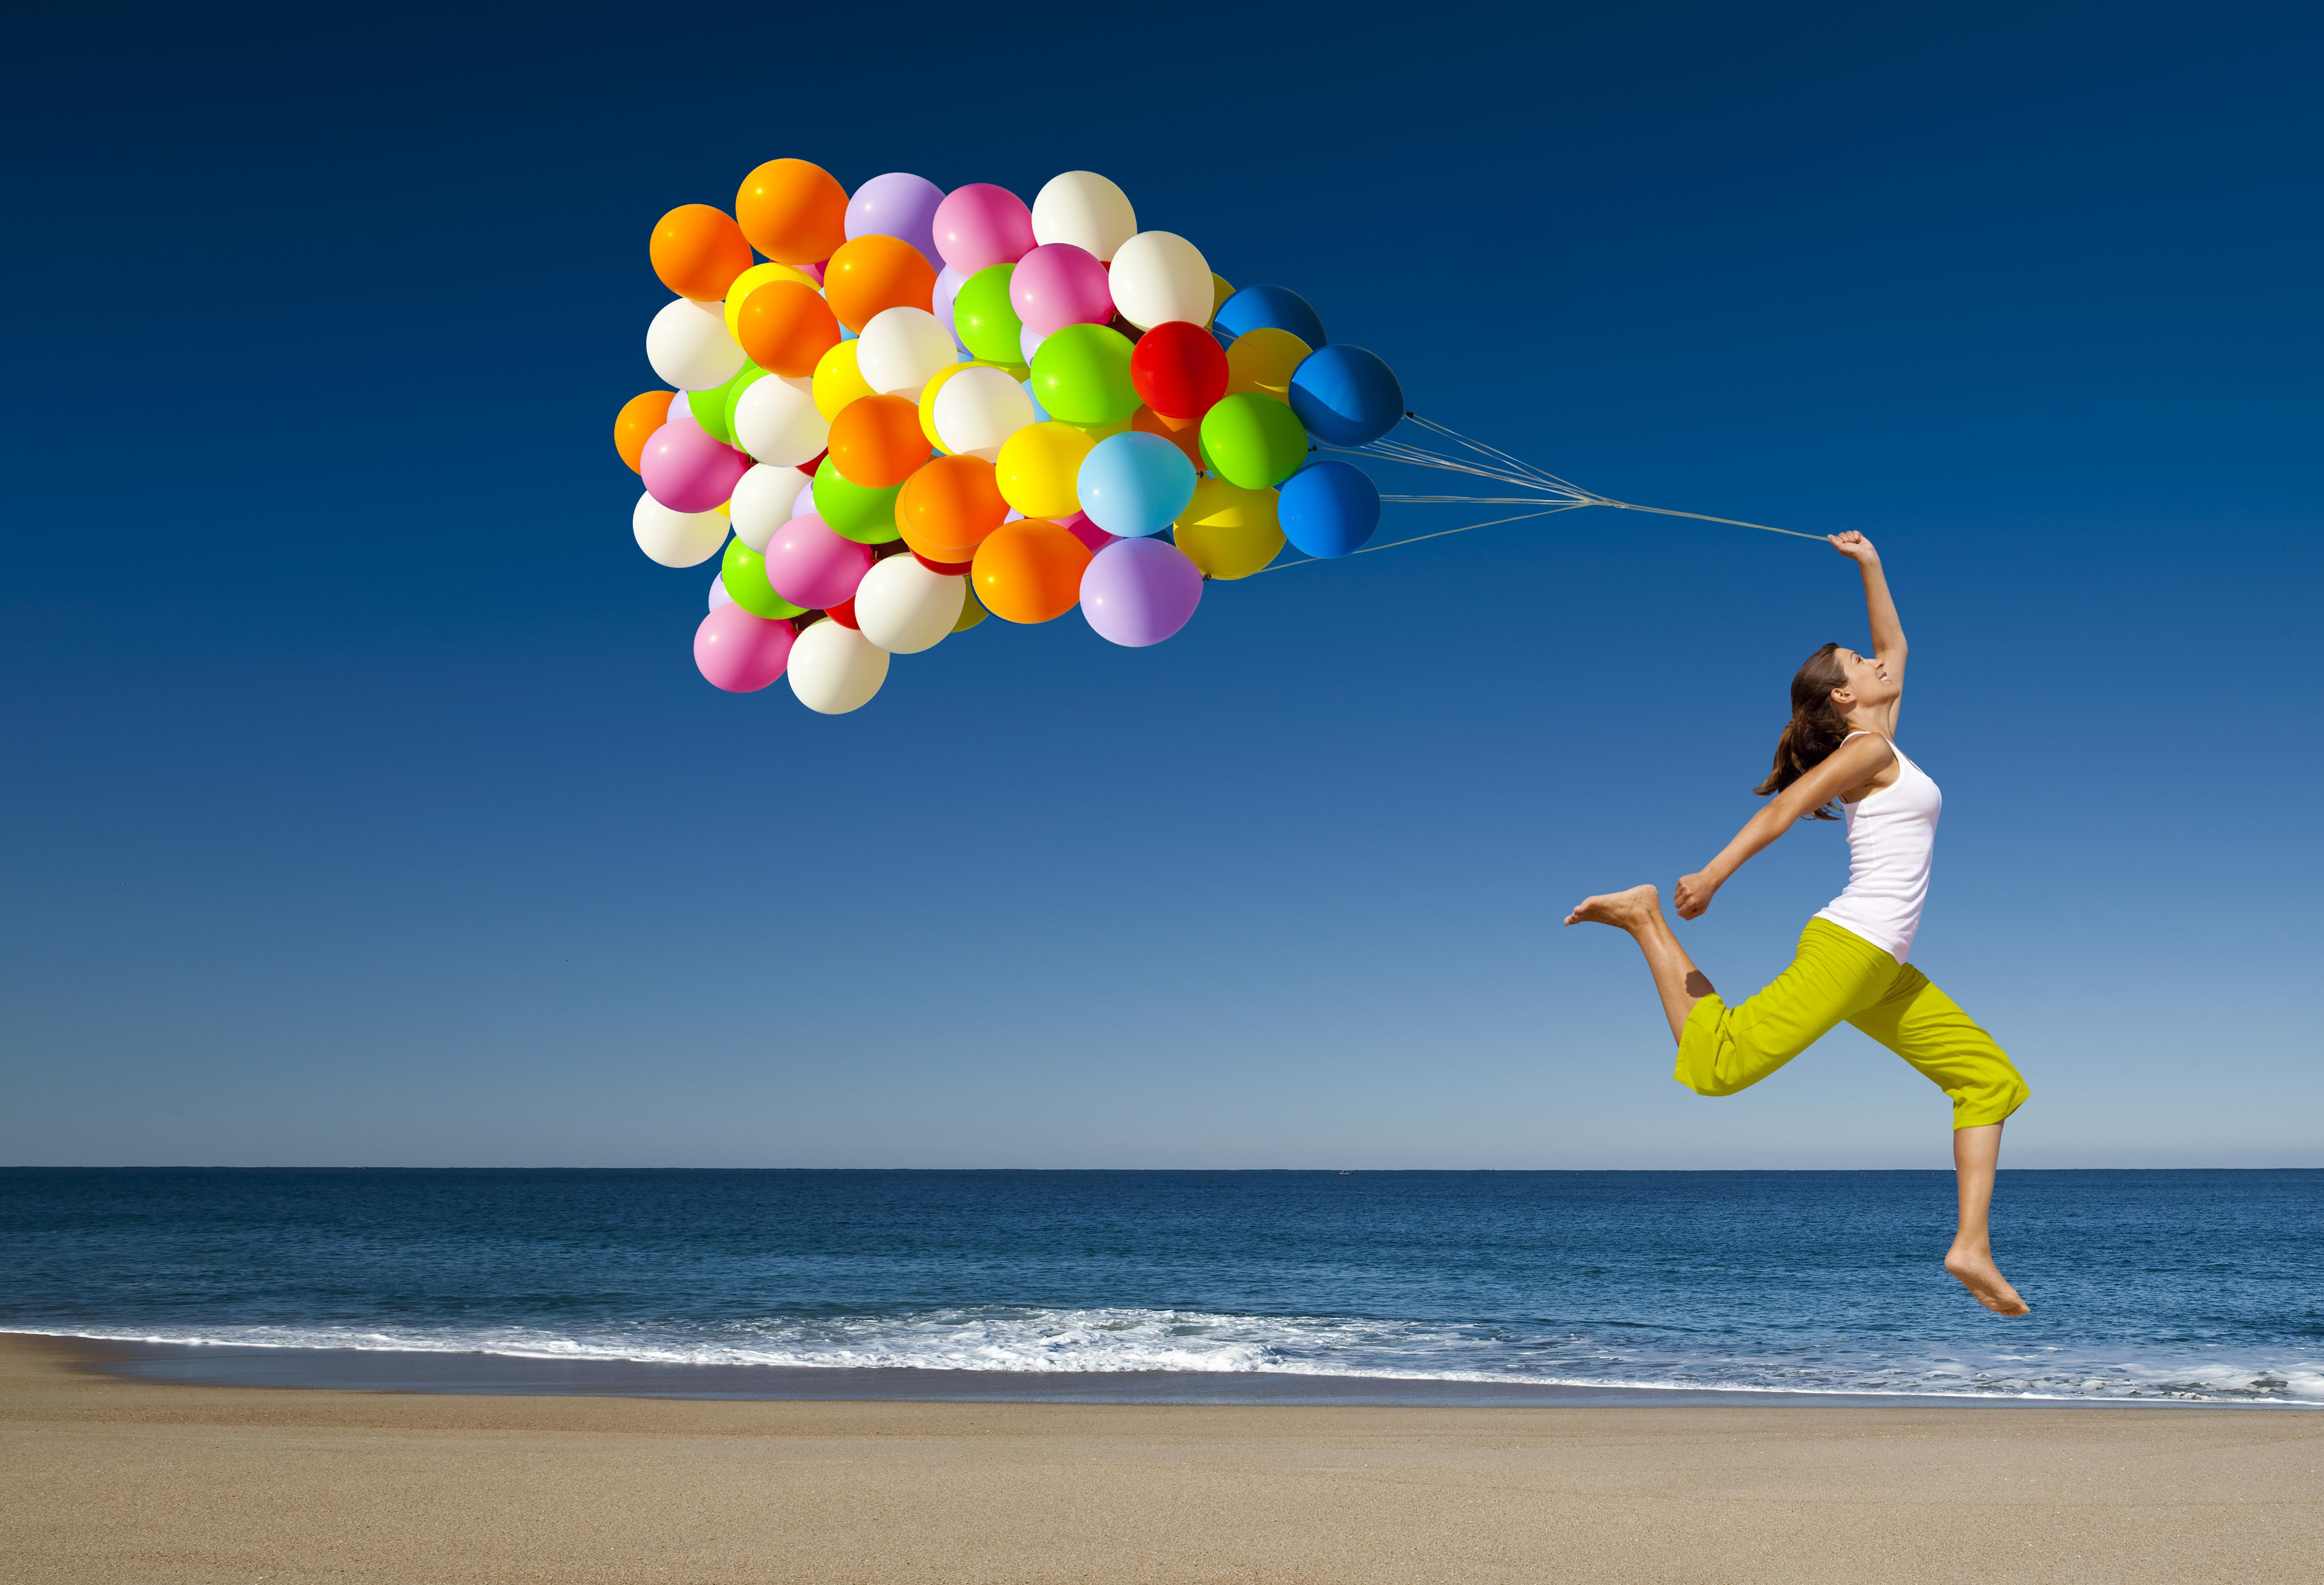 Living life in Balance - Master your Emotions